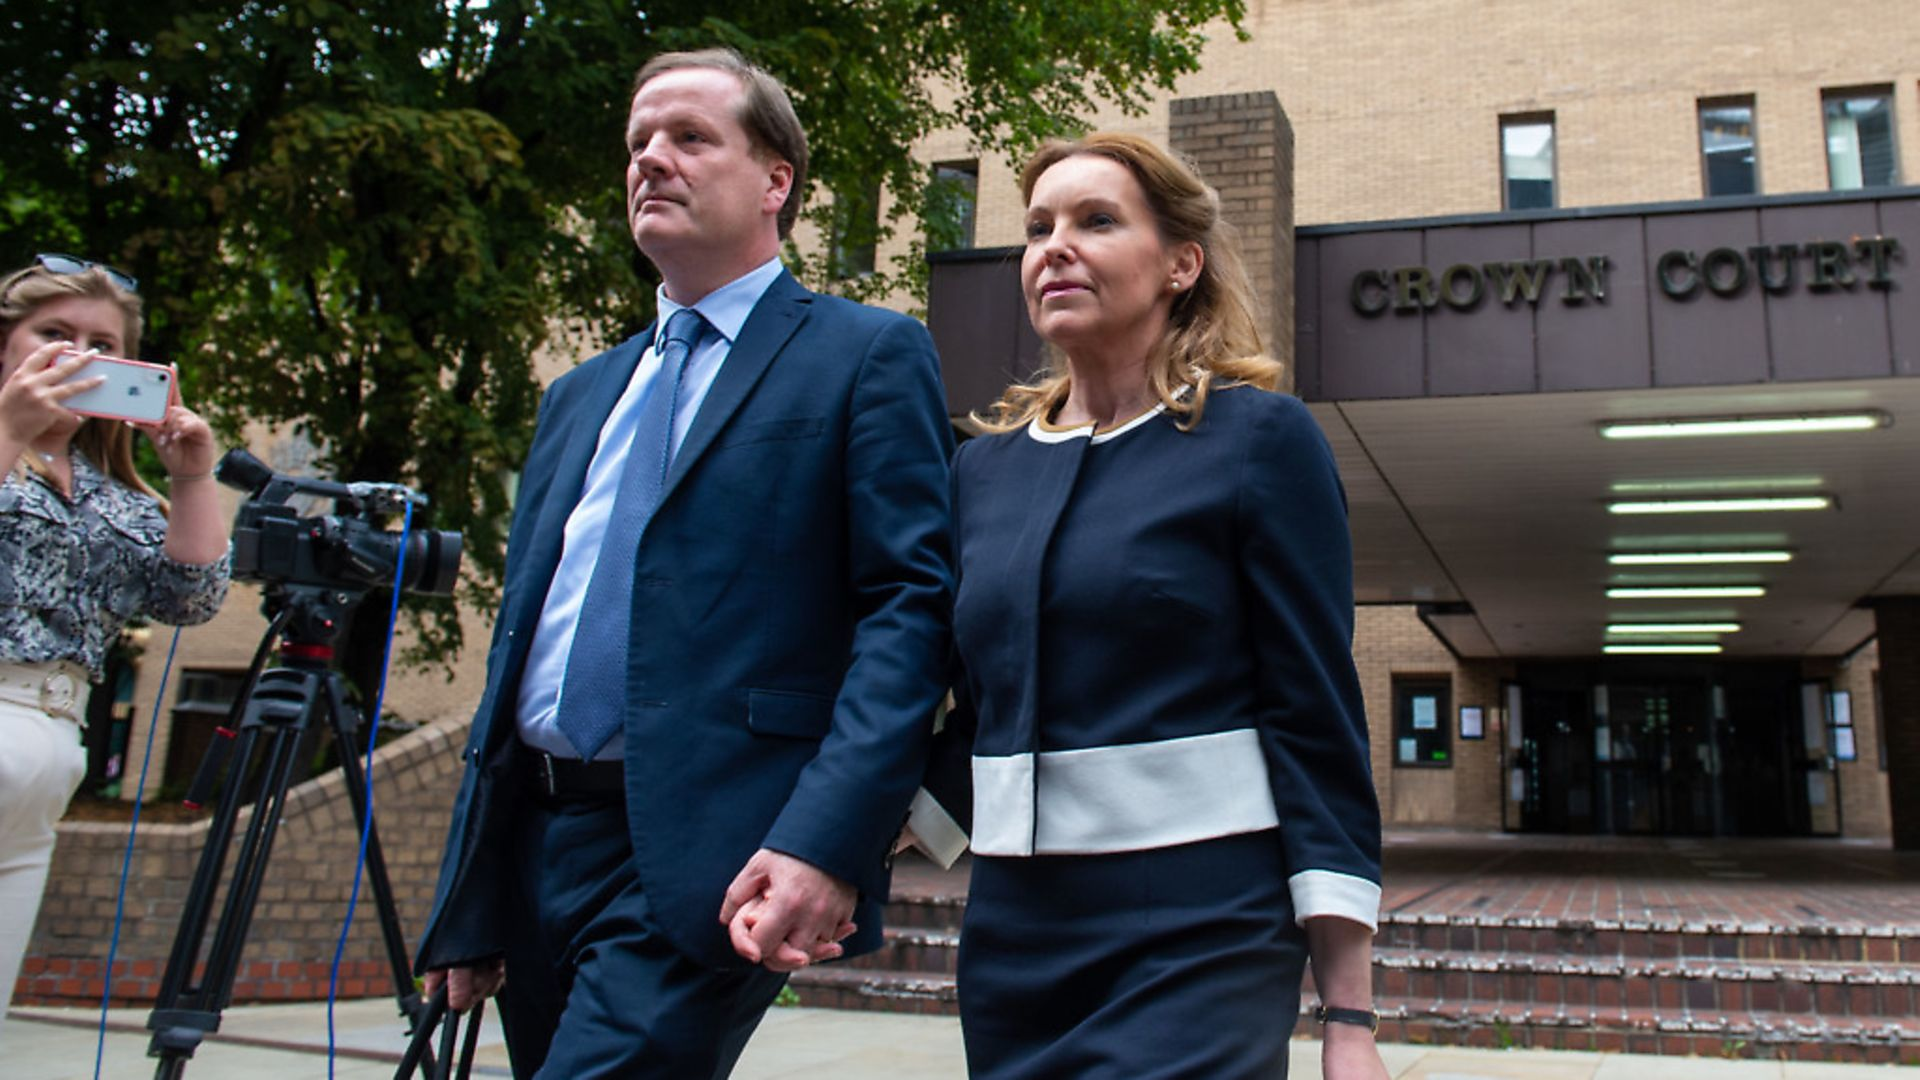 Former Conservative MP Charlie Elphicke, with MP for Dover Natalie Elphicke, leaving Southwark Crown Court in London. Photograph: Dominic Lipinski/PA Wire - Credit: PA